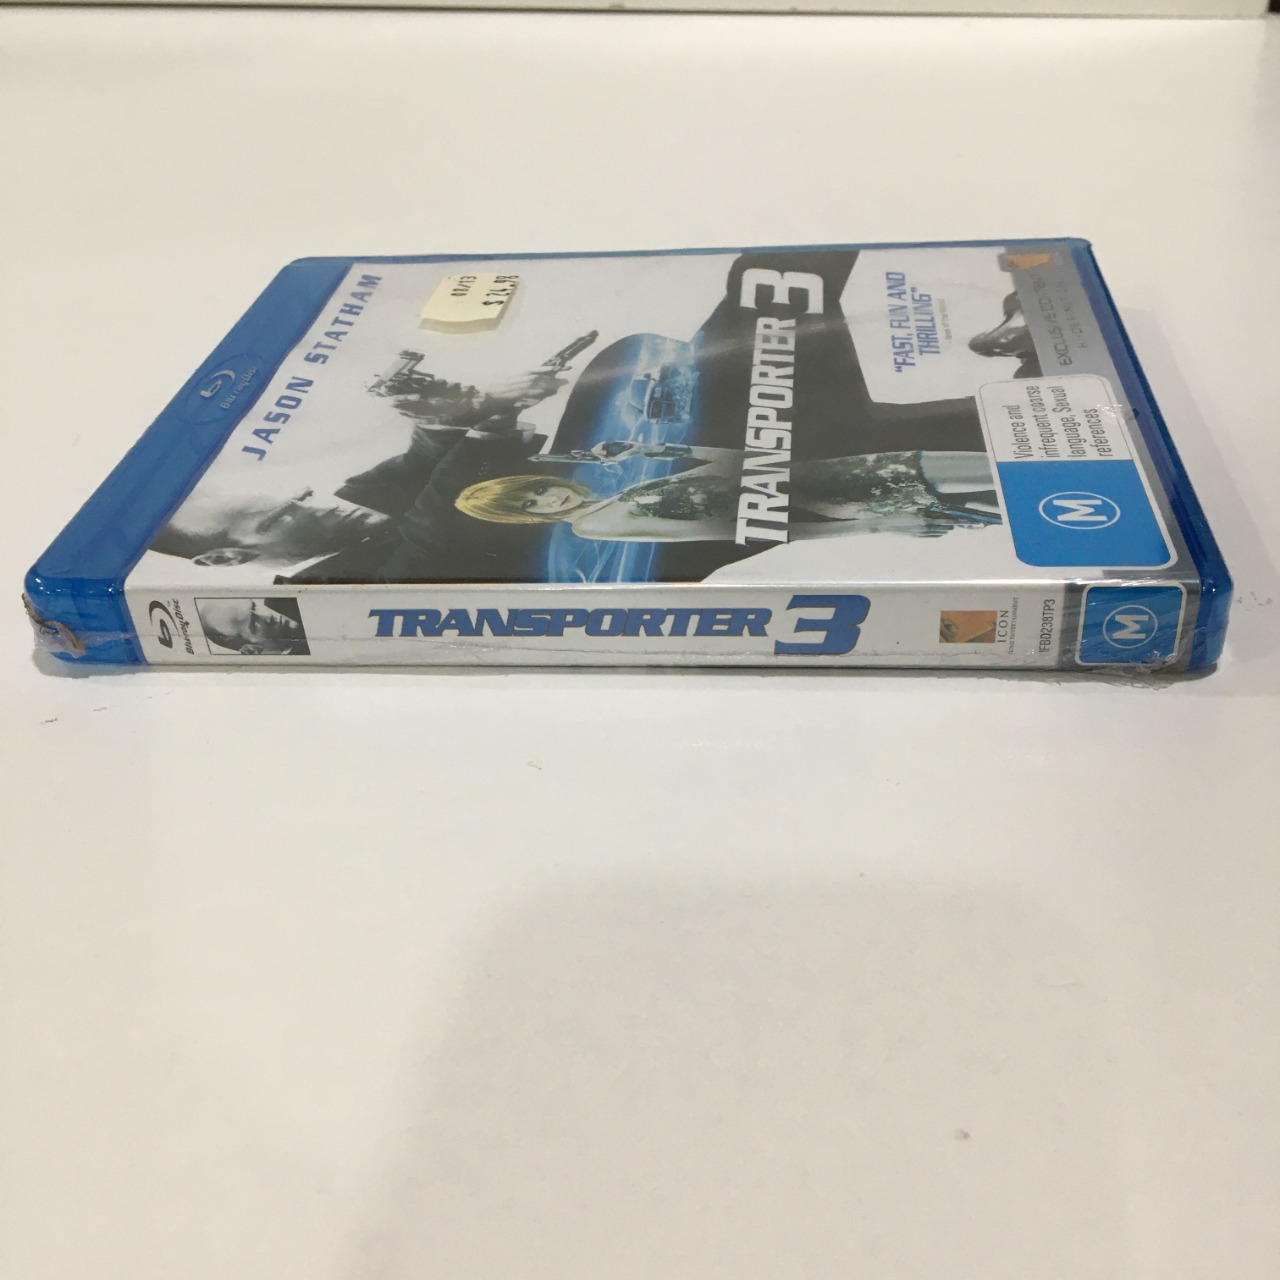 CLEARANCE - Transporter 3